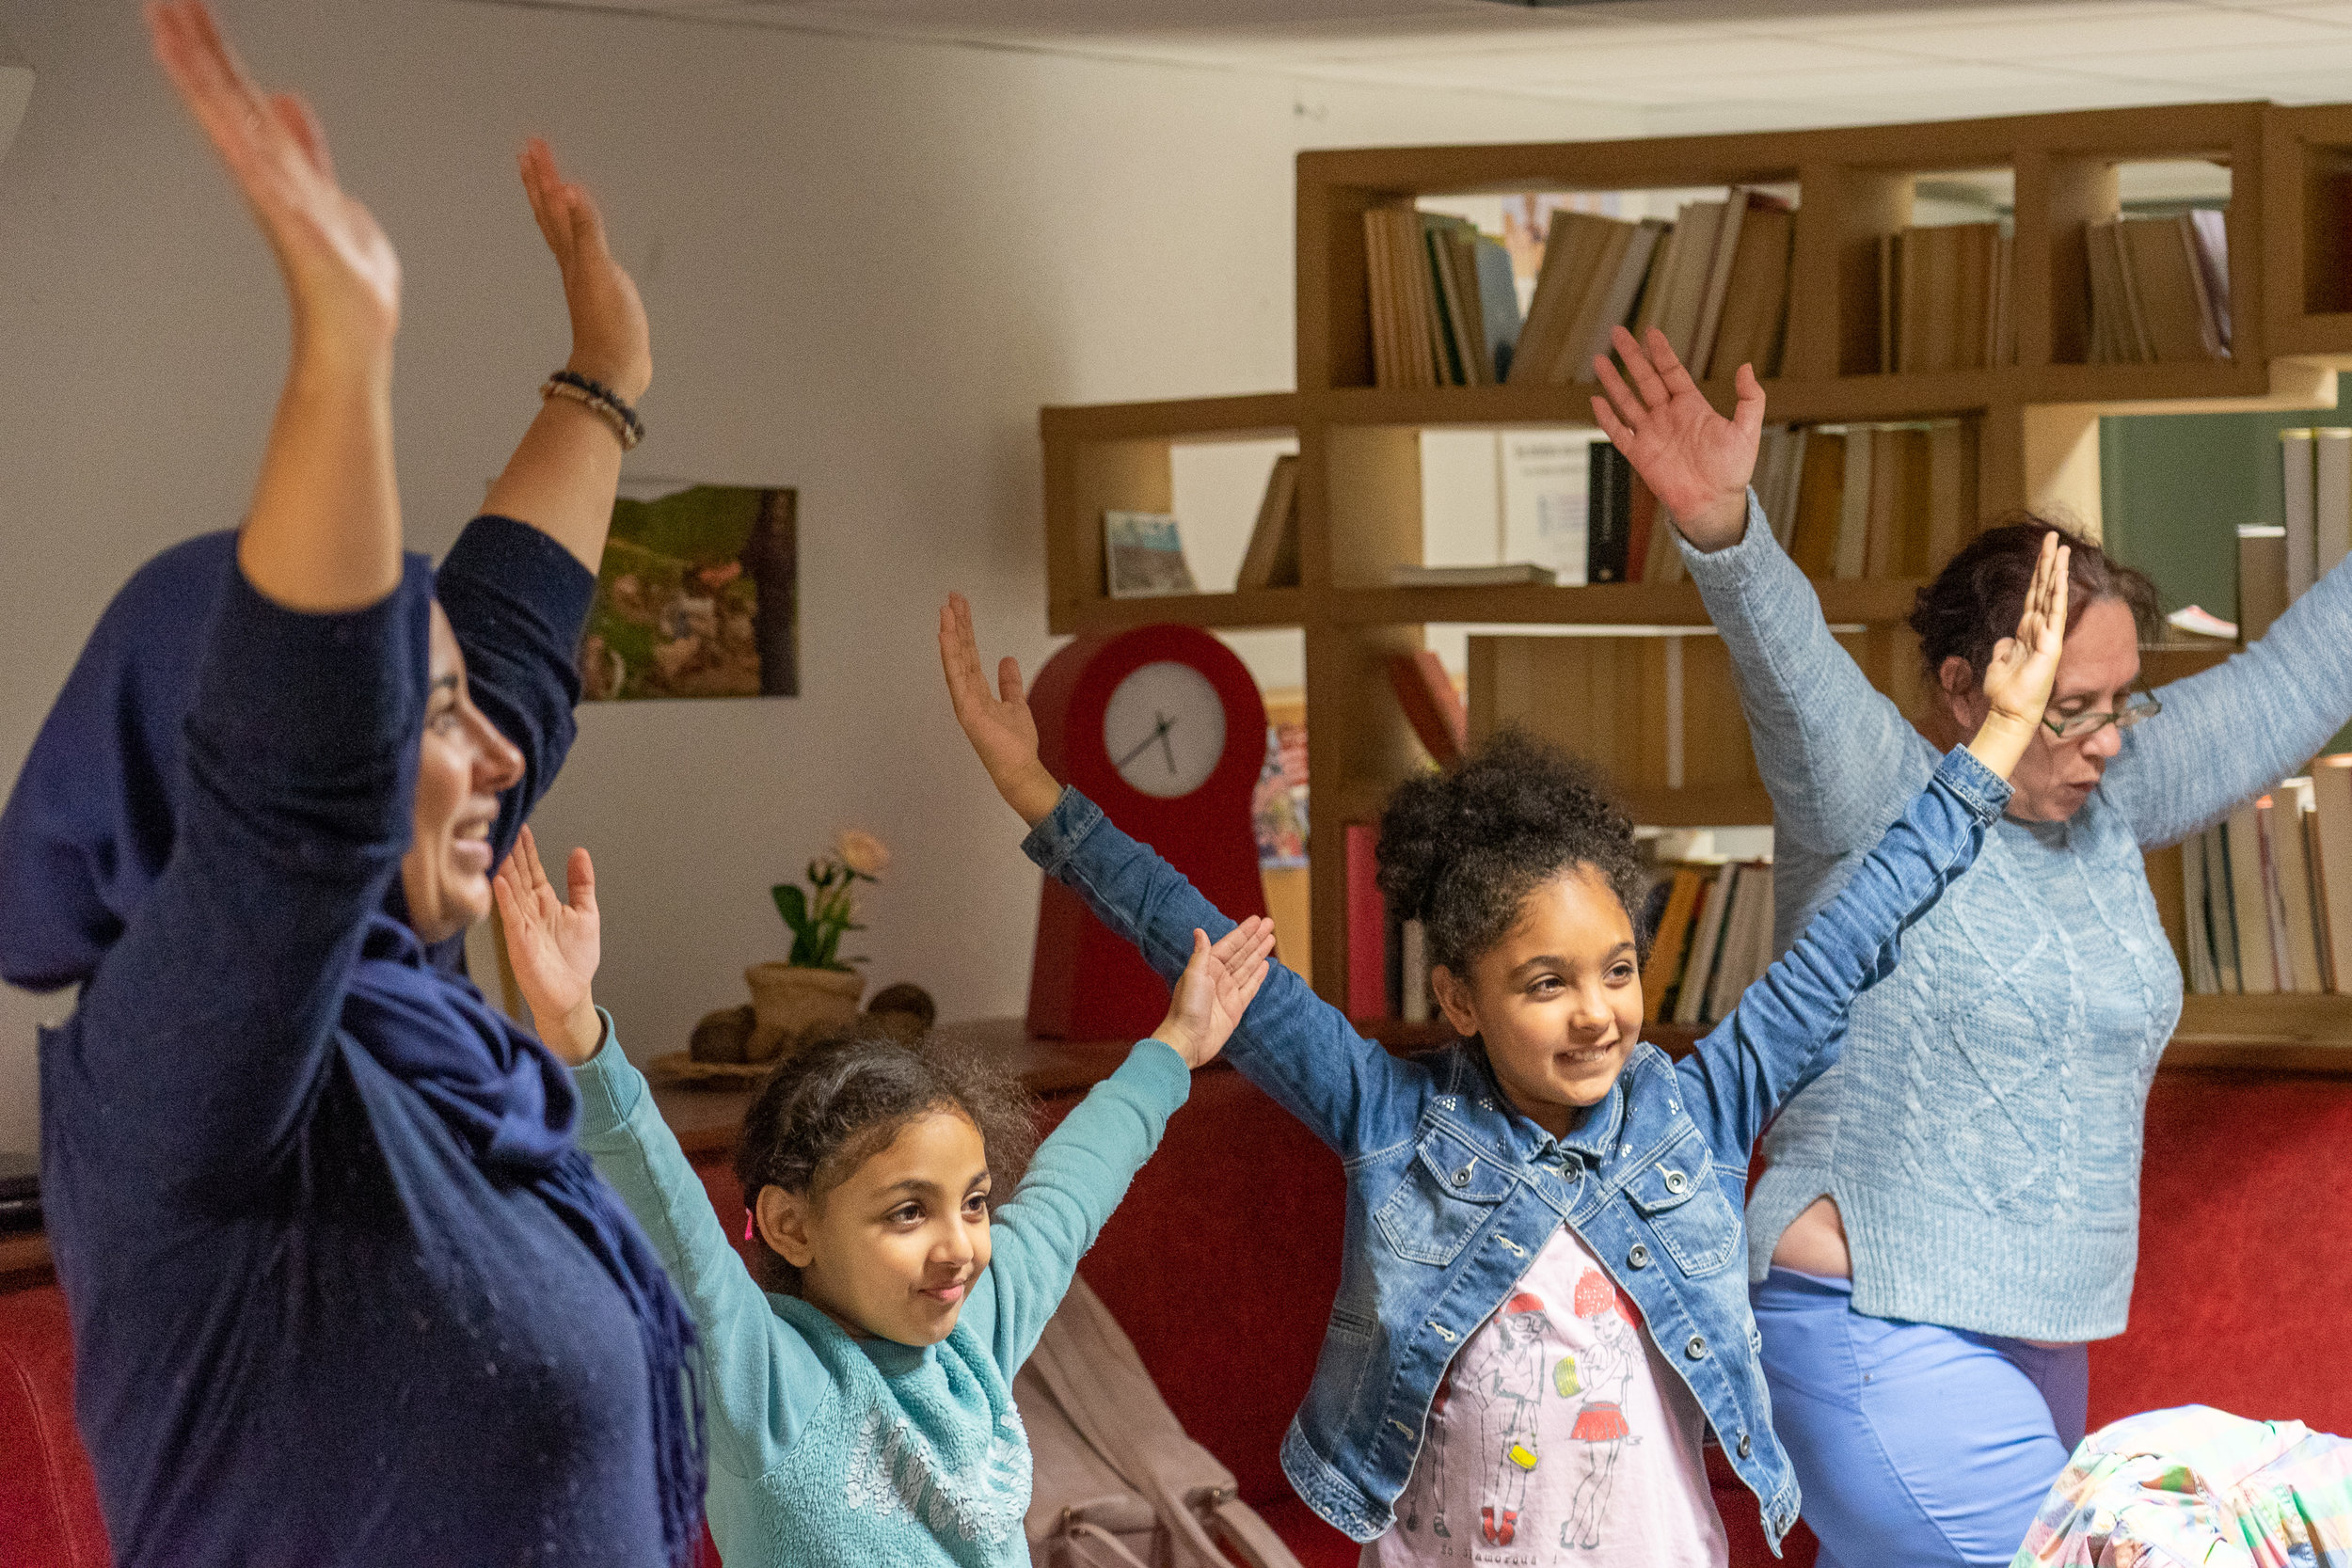 Najoua, her daughters and Madeleine during one of our classes at the residence Le Moulin.